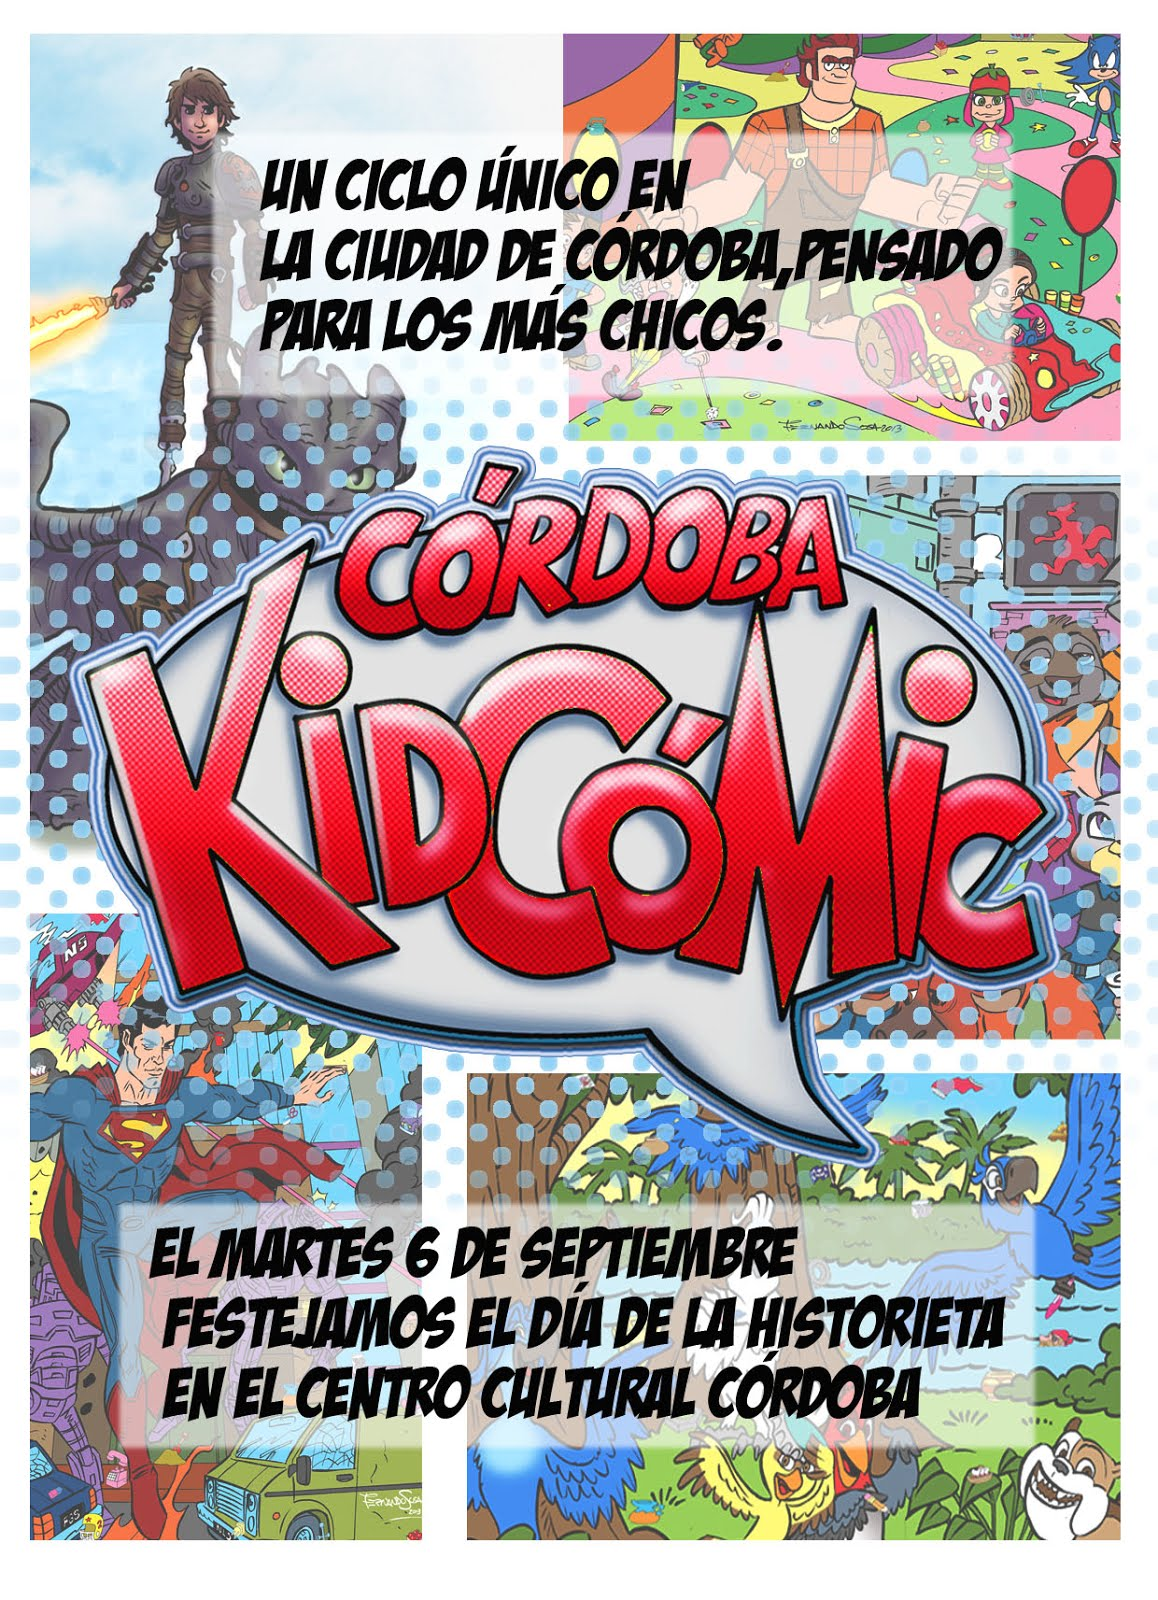 Córdoba Kidcómic